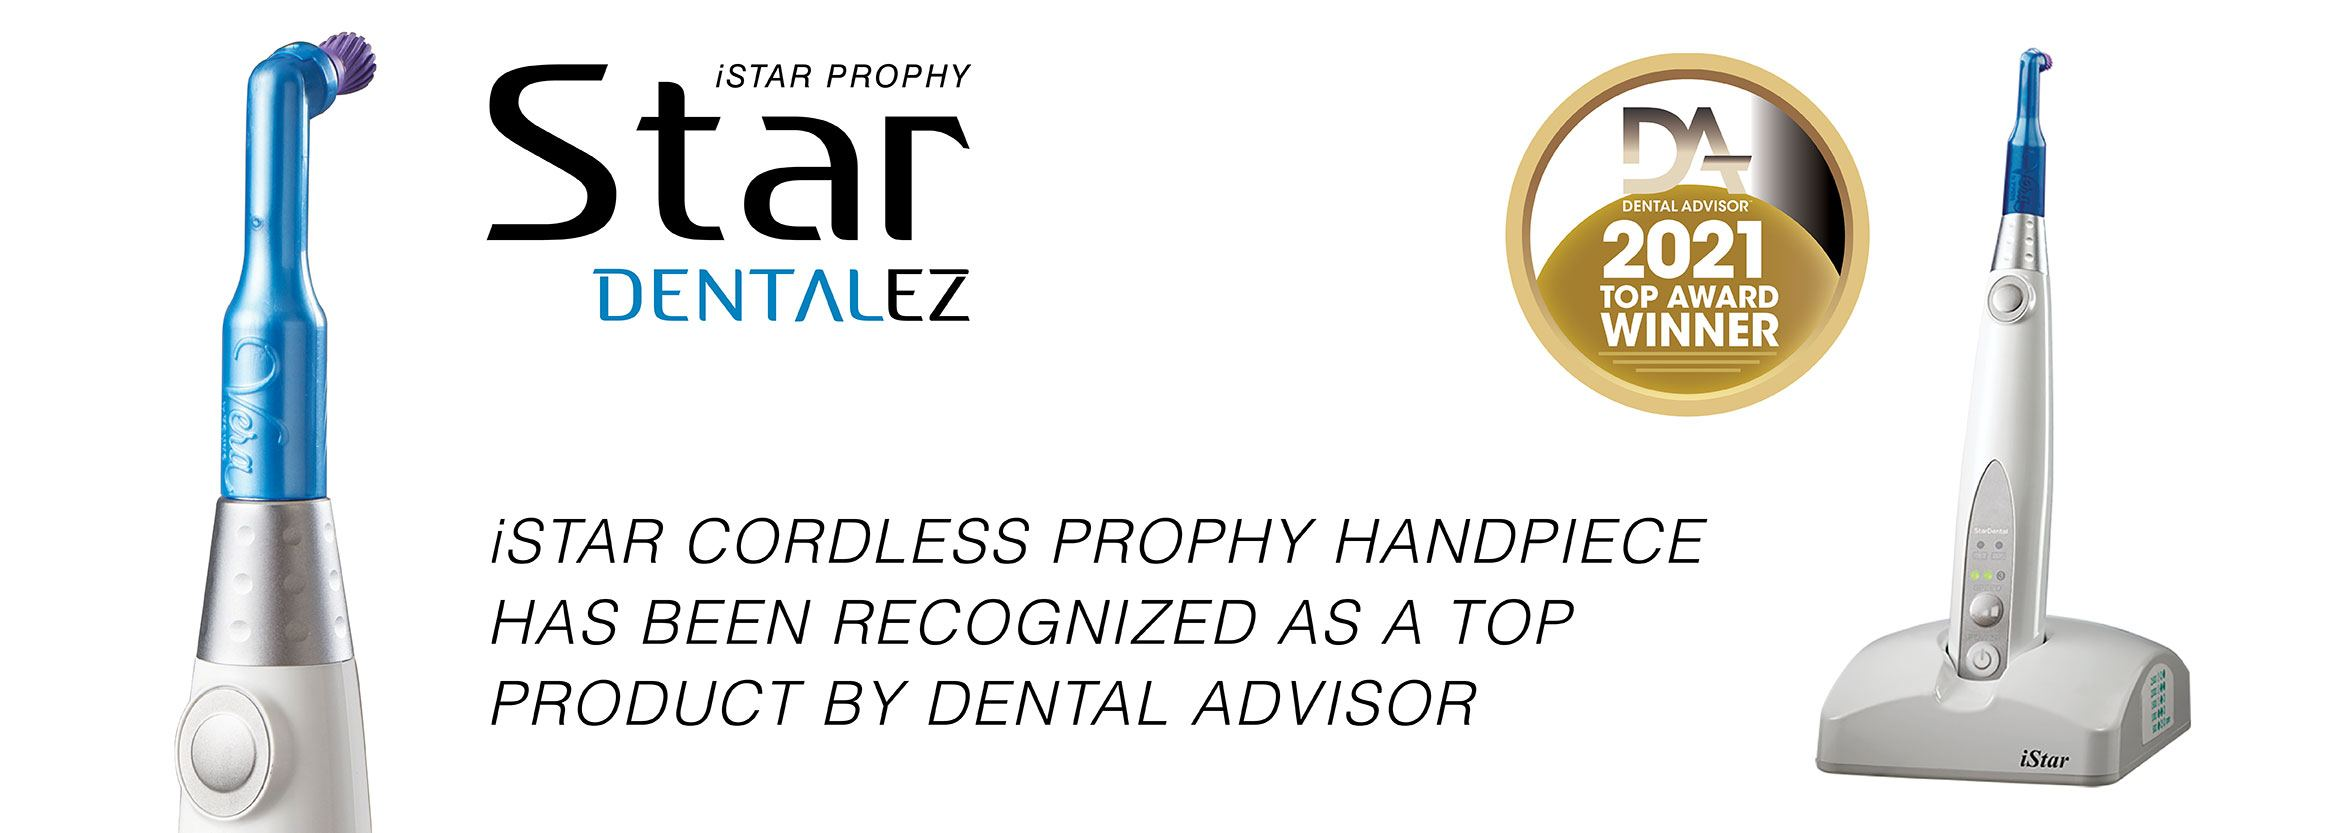 iStar recognized as Top Product by Dental Advisor